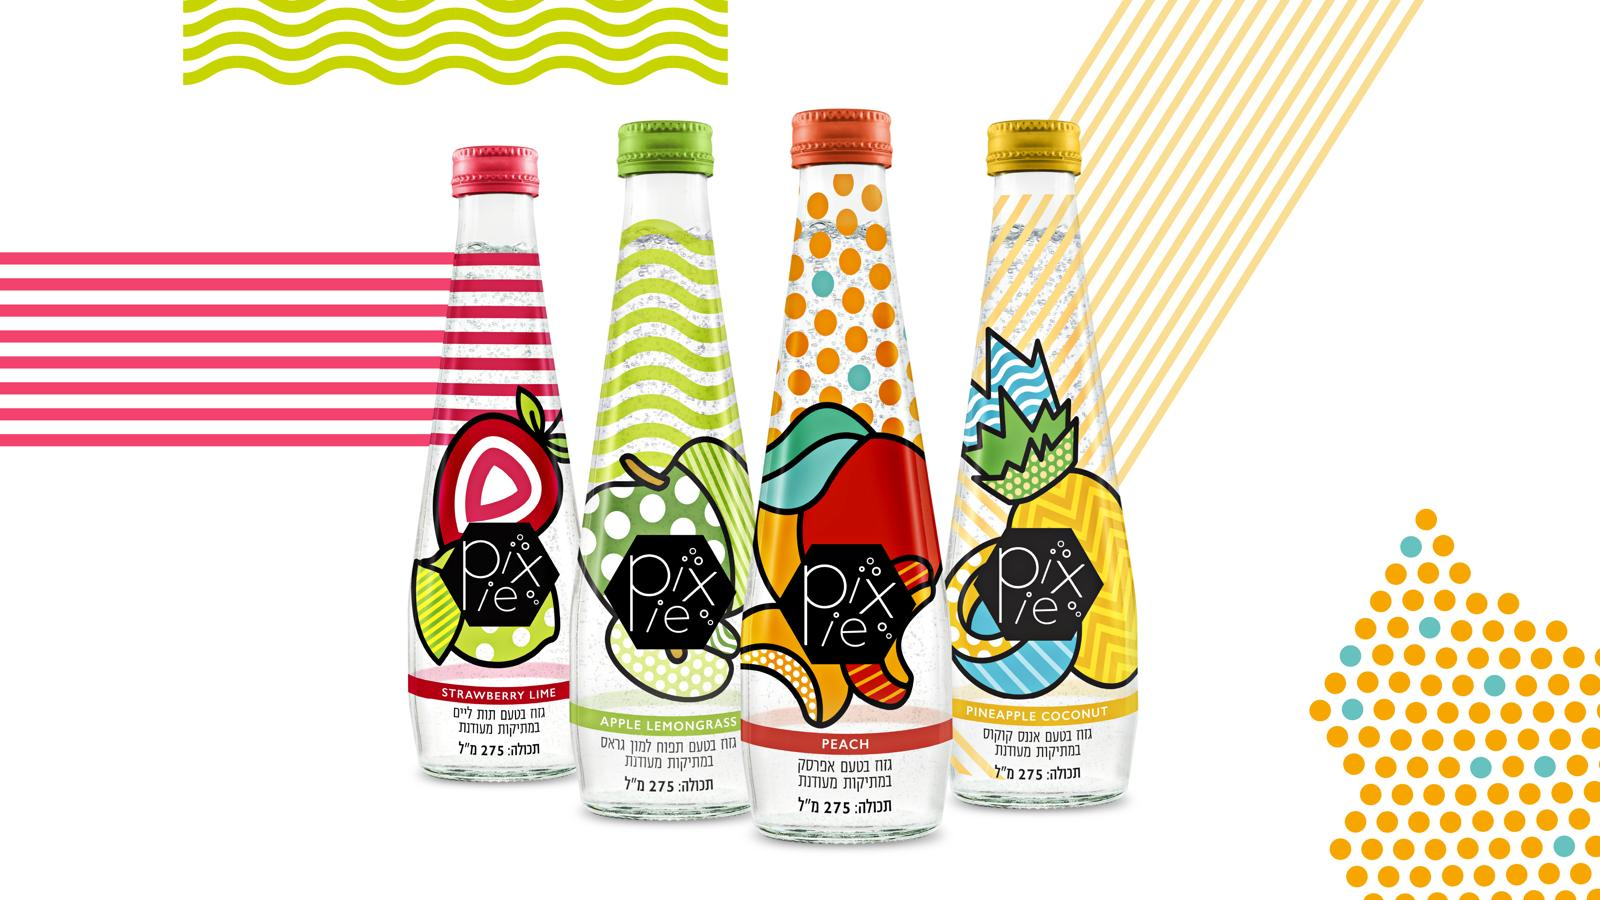 Package Design for Sparkling Water Brand Pixie / World Brand Design Society